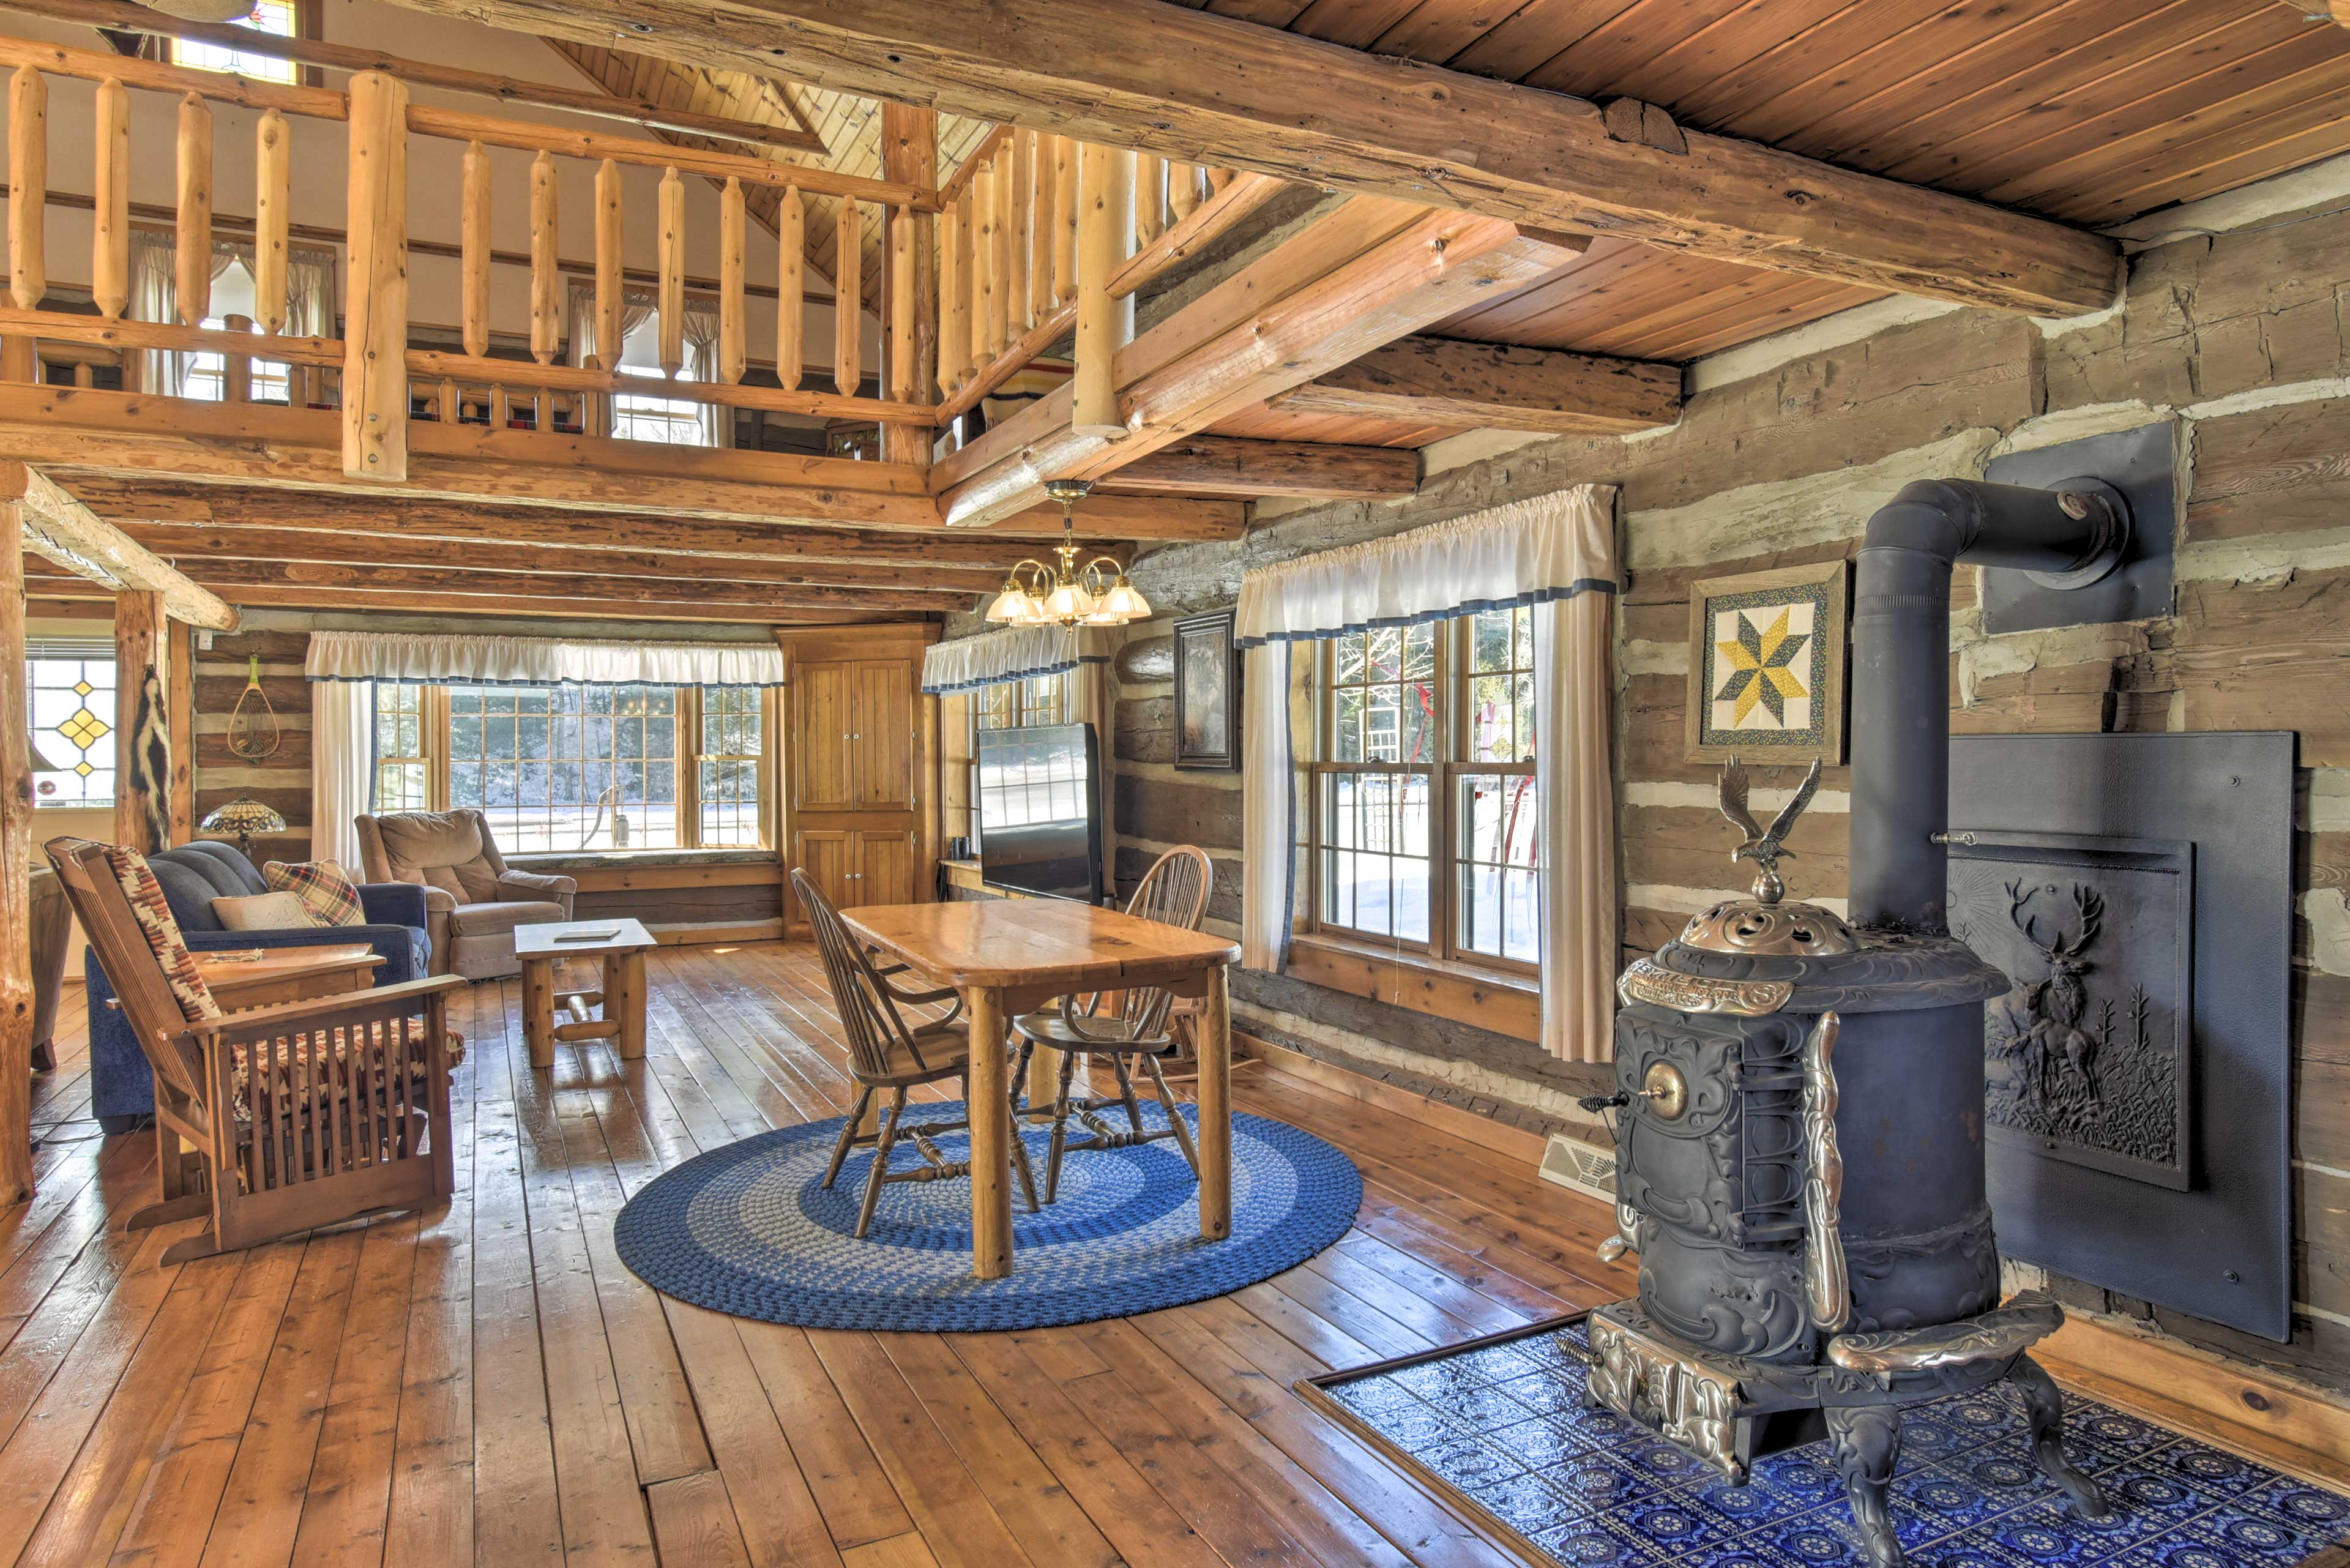 The living room features a decorative vintage wood-burning stove.